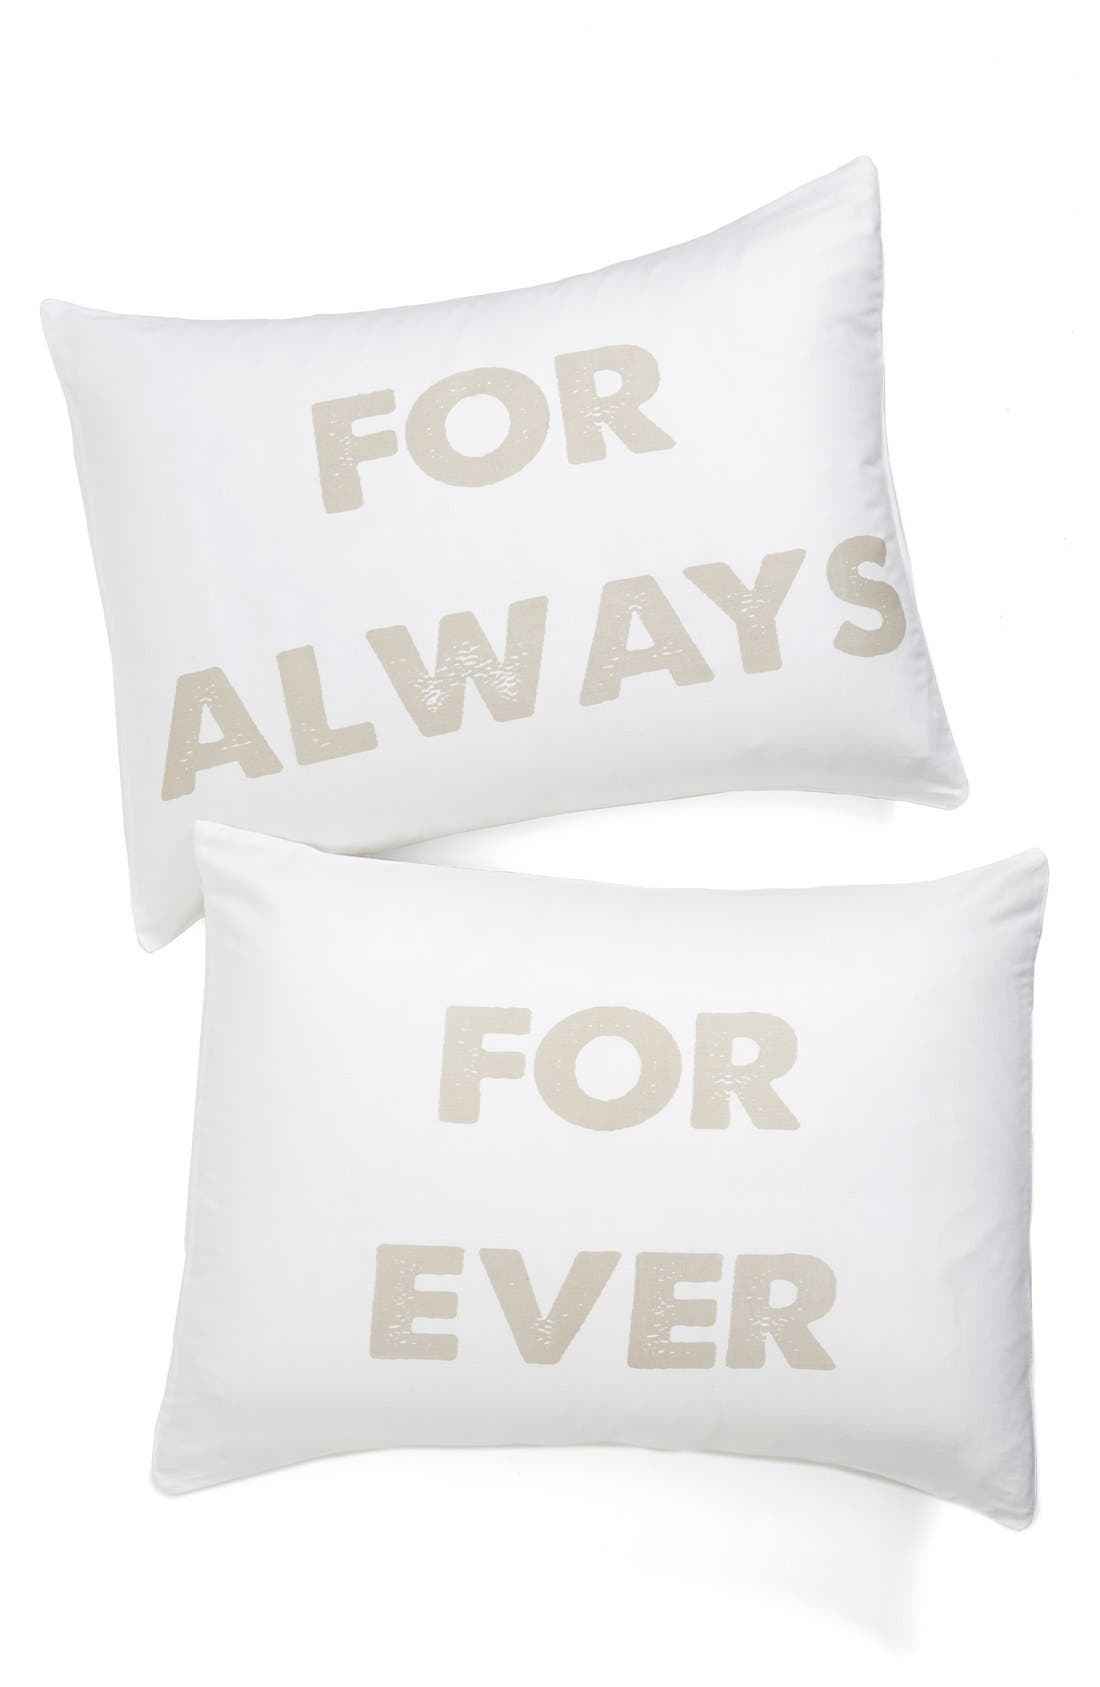 Alternate Image 1 Selected - Levtex 'For Always/For Ever' Pillowcases (Set of 2)